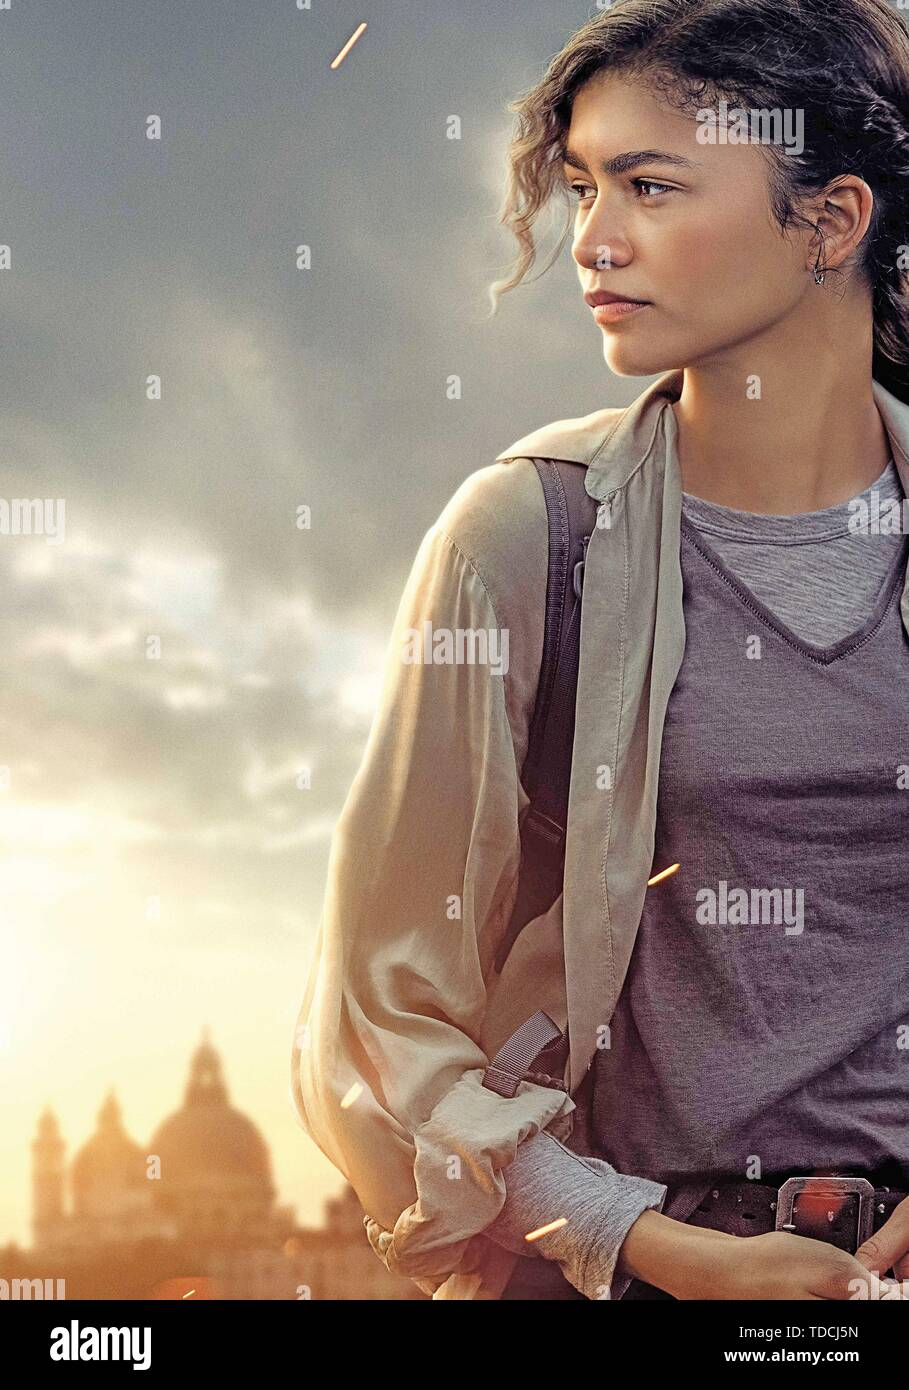 Zendaya In Spider Man Far From Home 2019 Credit Columbia Pictures Marvel Entertainment Album Stock Photo Alamy